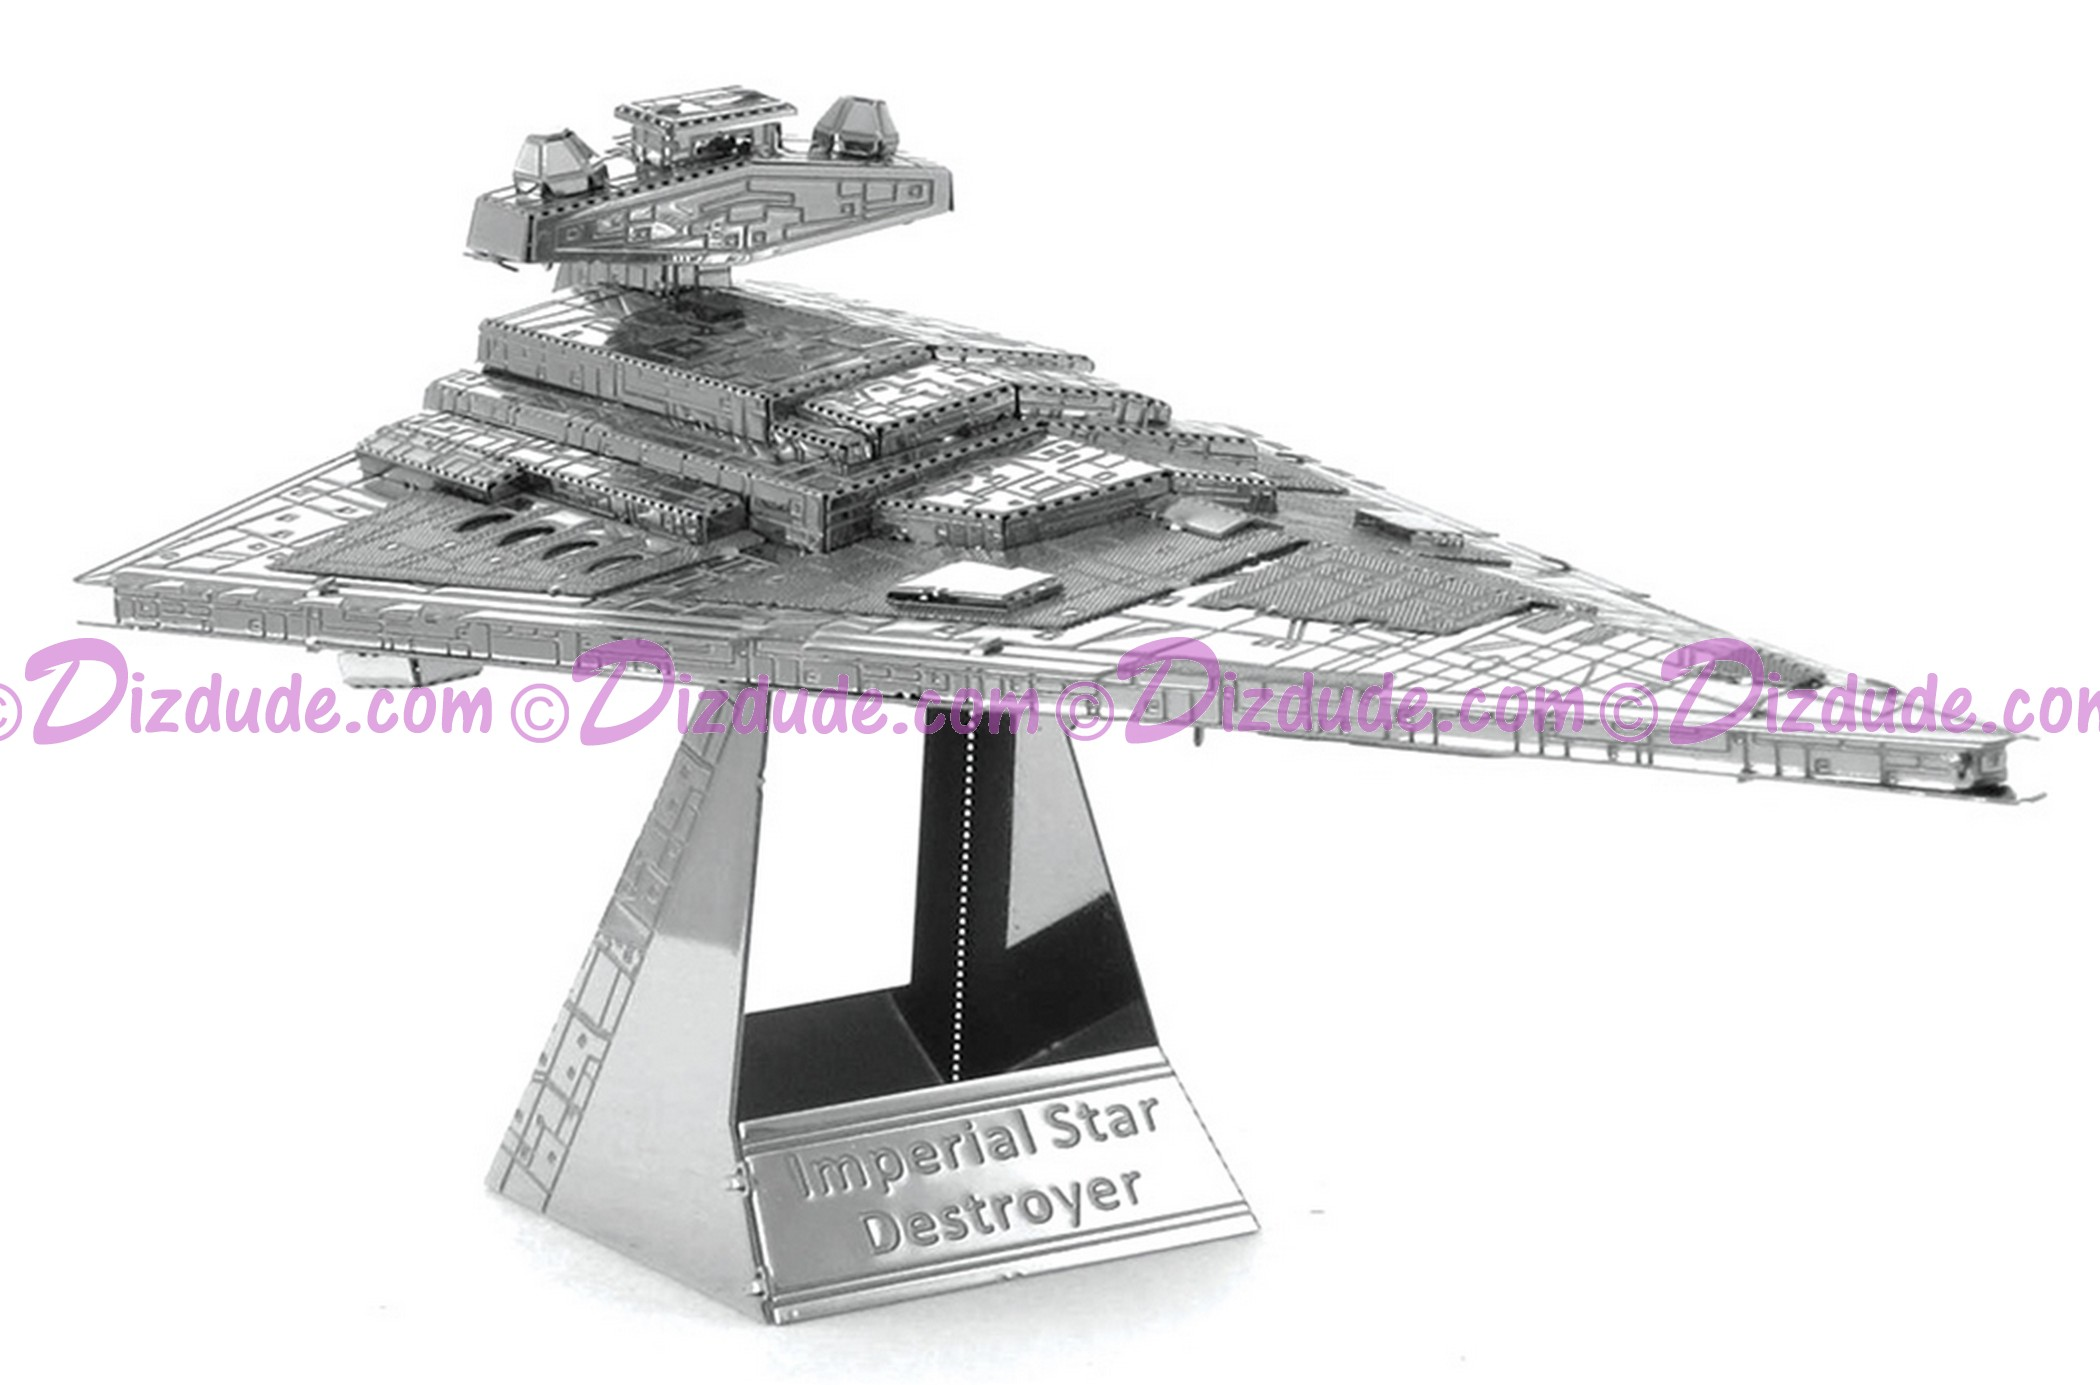 Disney Star Wars Imperial Star Destroyer 3D Metal Model Kit © Dizdude.com